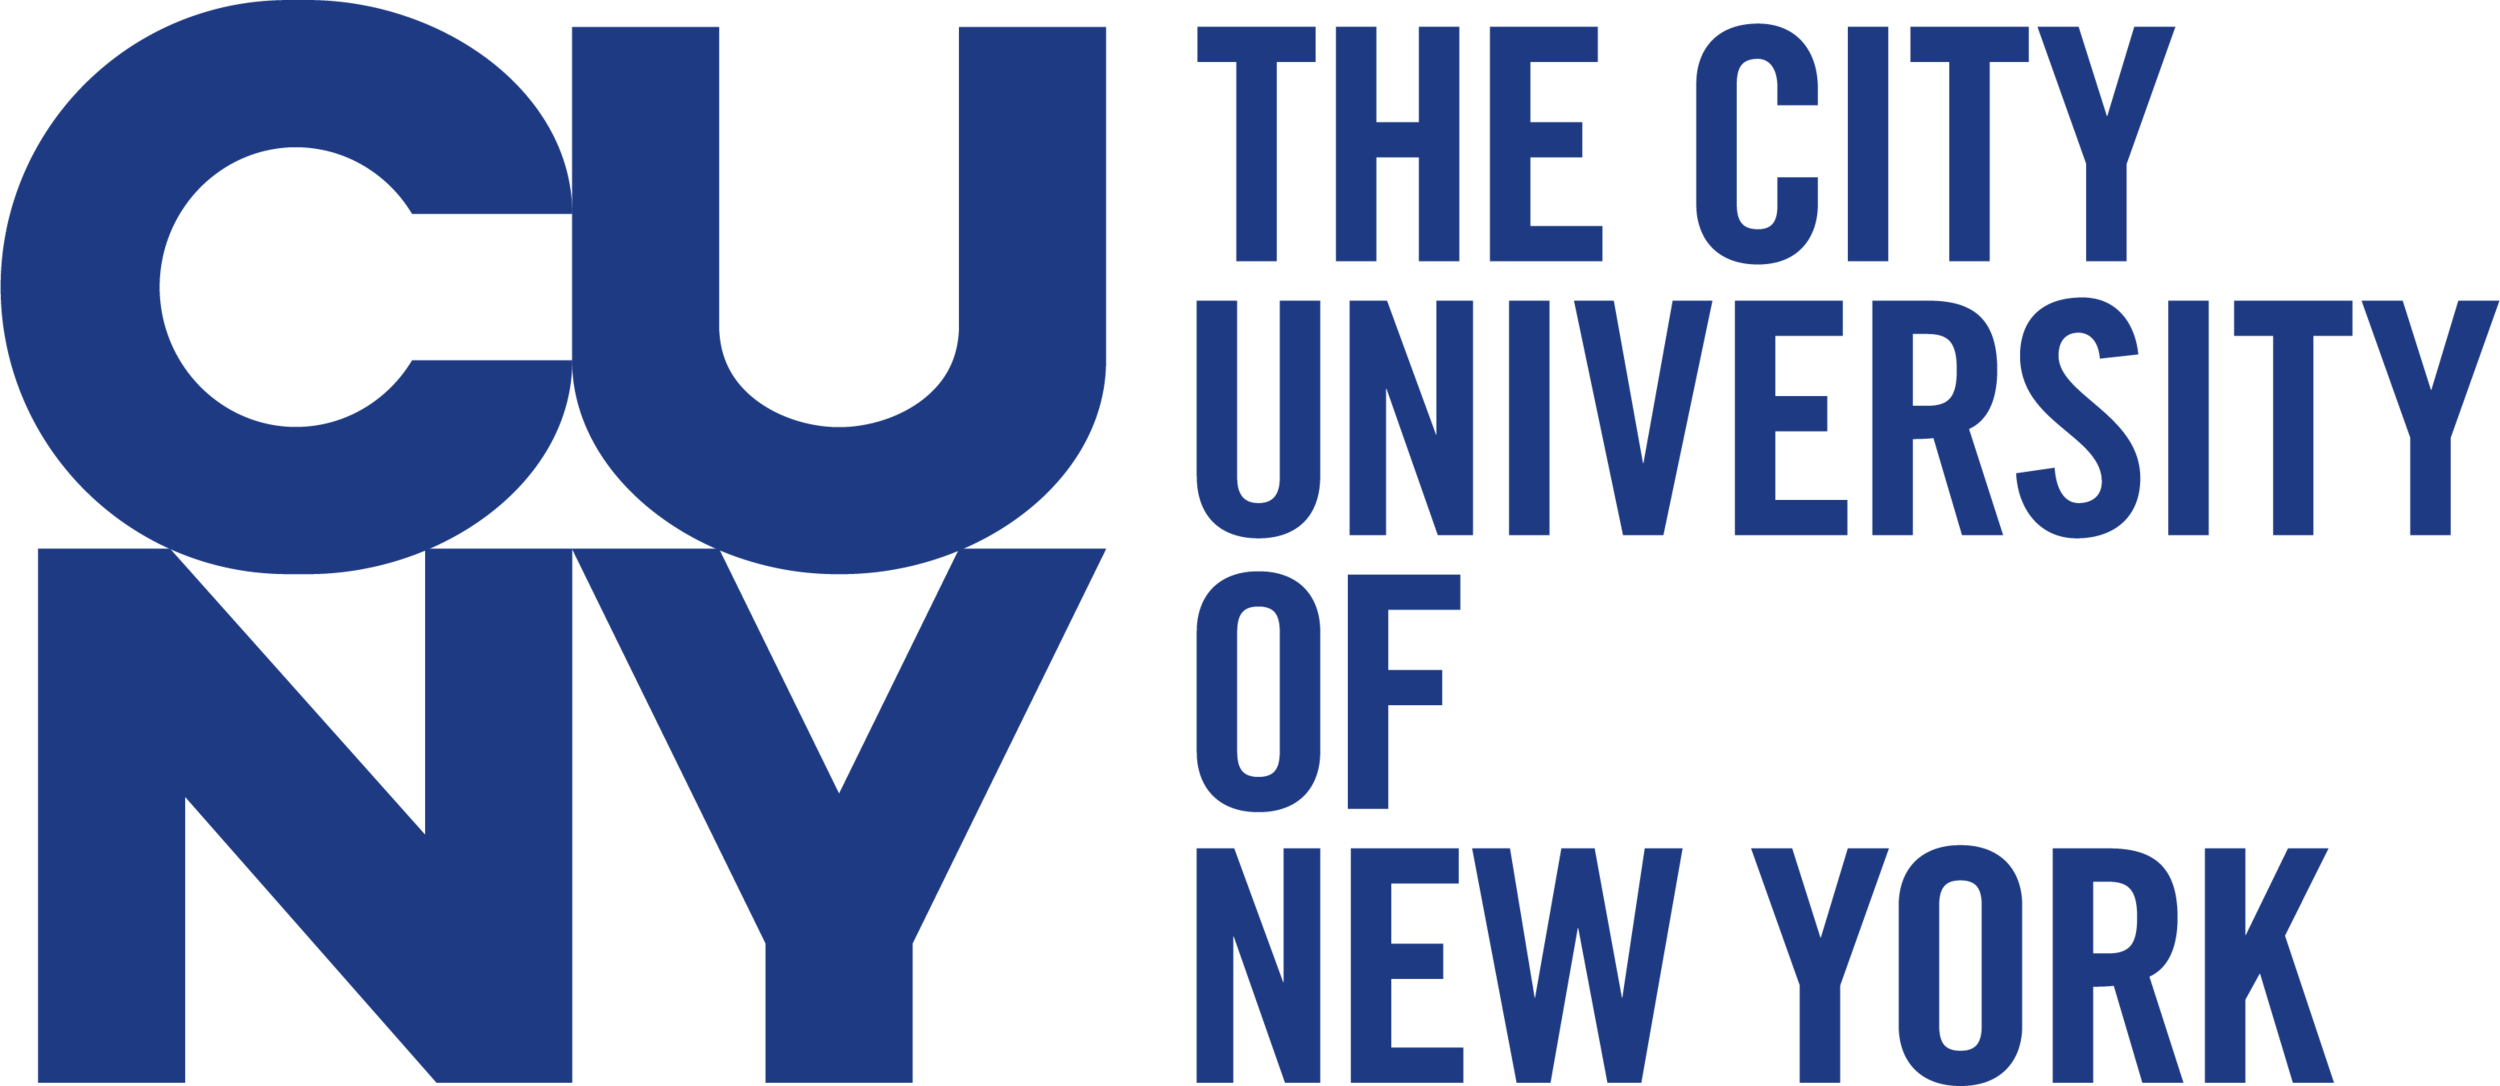 CUNY_Logo_with-Name_Right_Blue_RGB.png